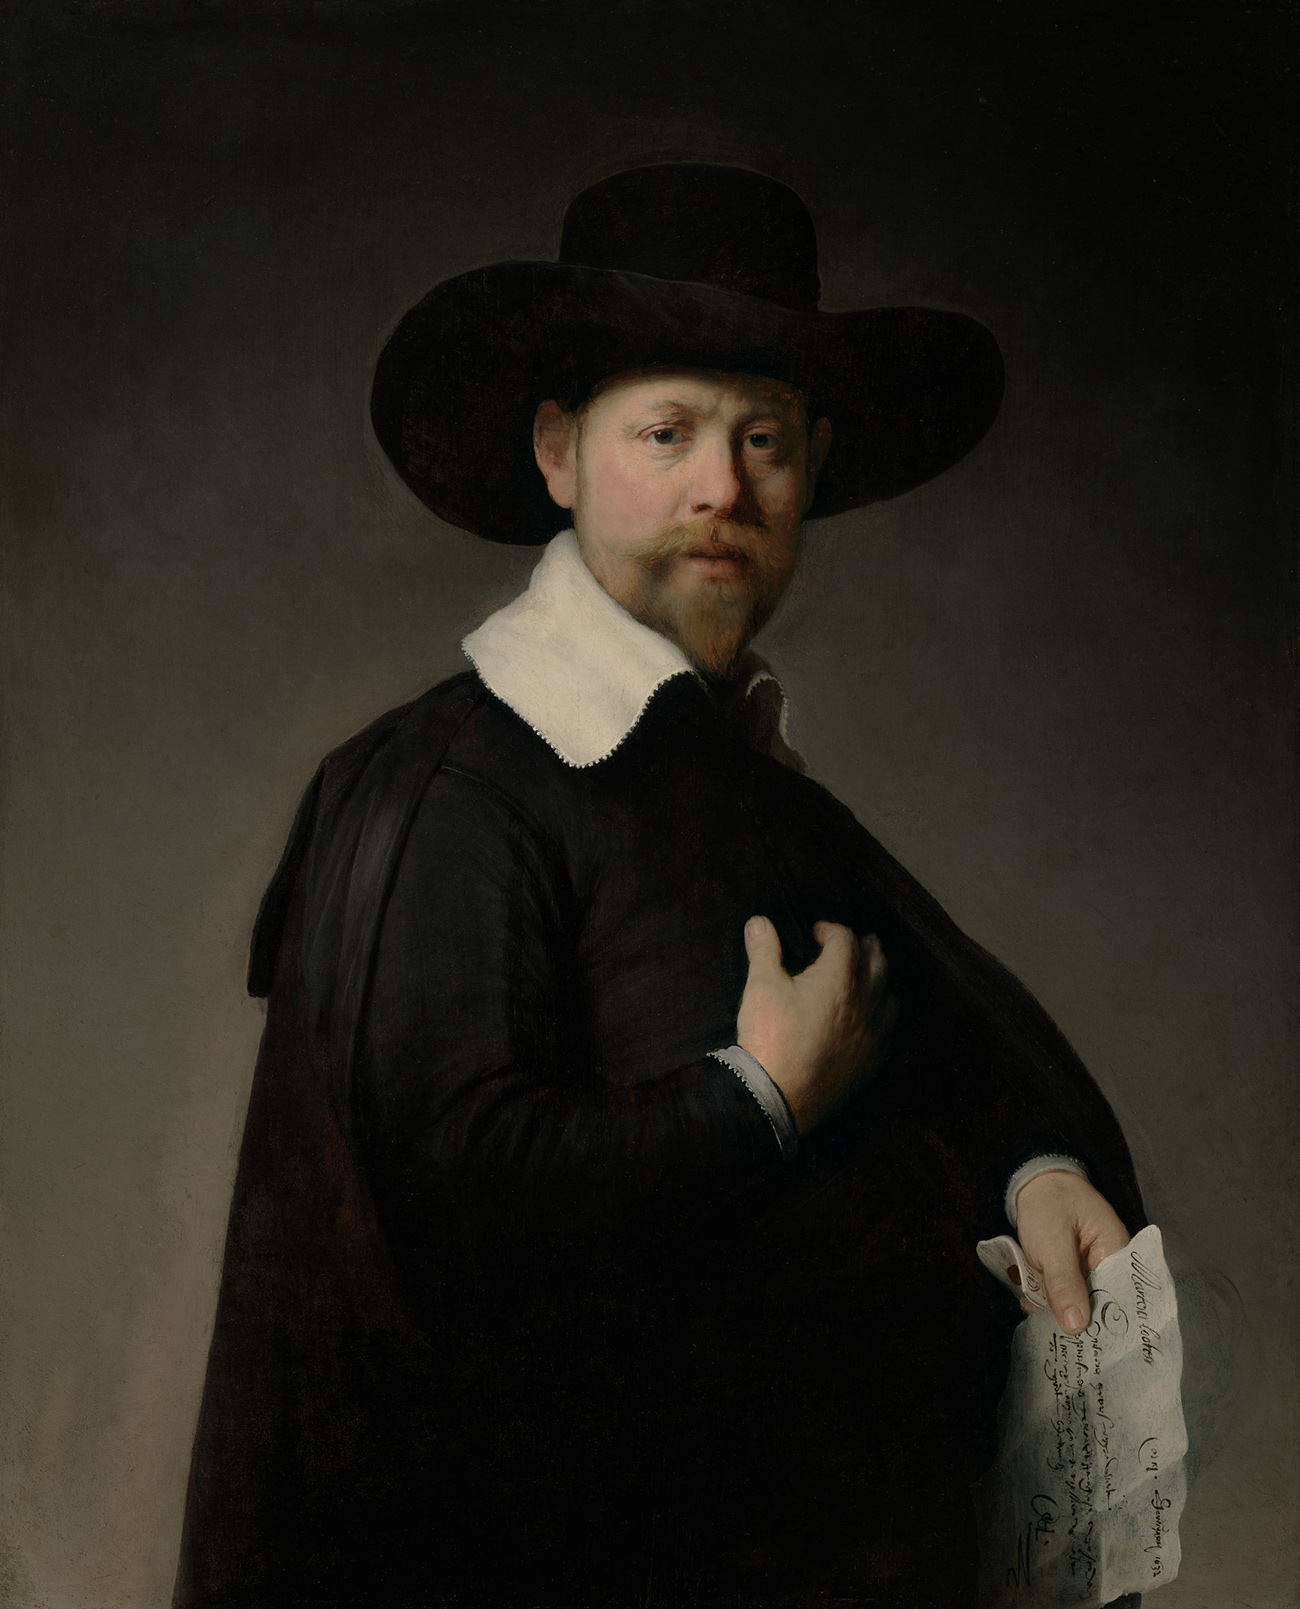 Portrait of a man with a pointy bears and small mustache. He's wearing a wide-brimmed hat, wide white collar, and black cloak over a black jacket. He holds a letter in his left hand